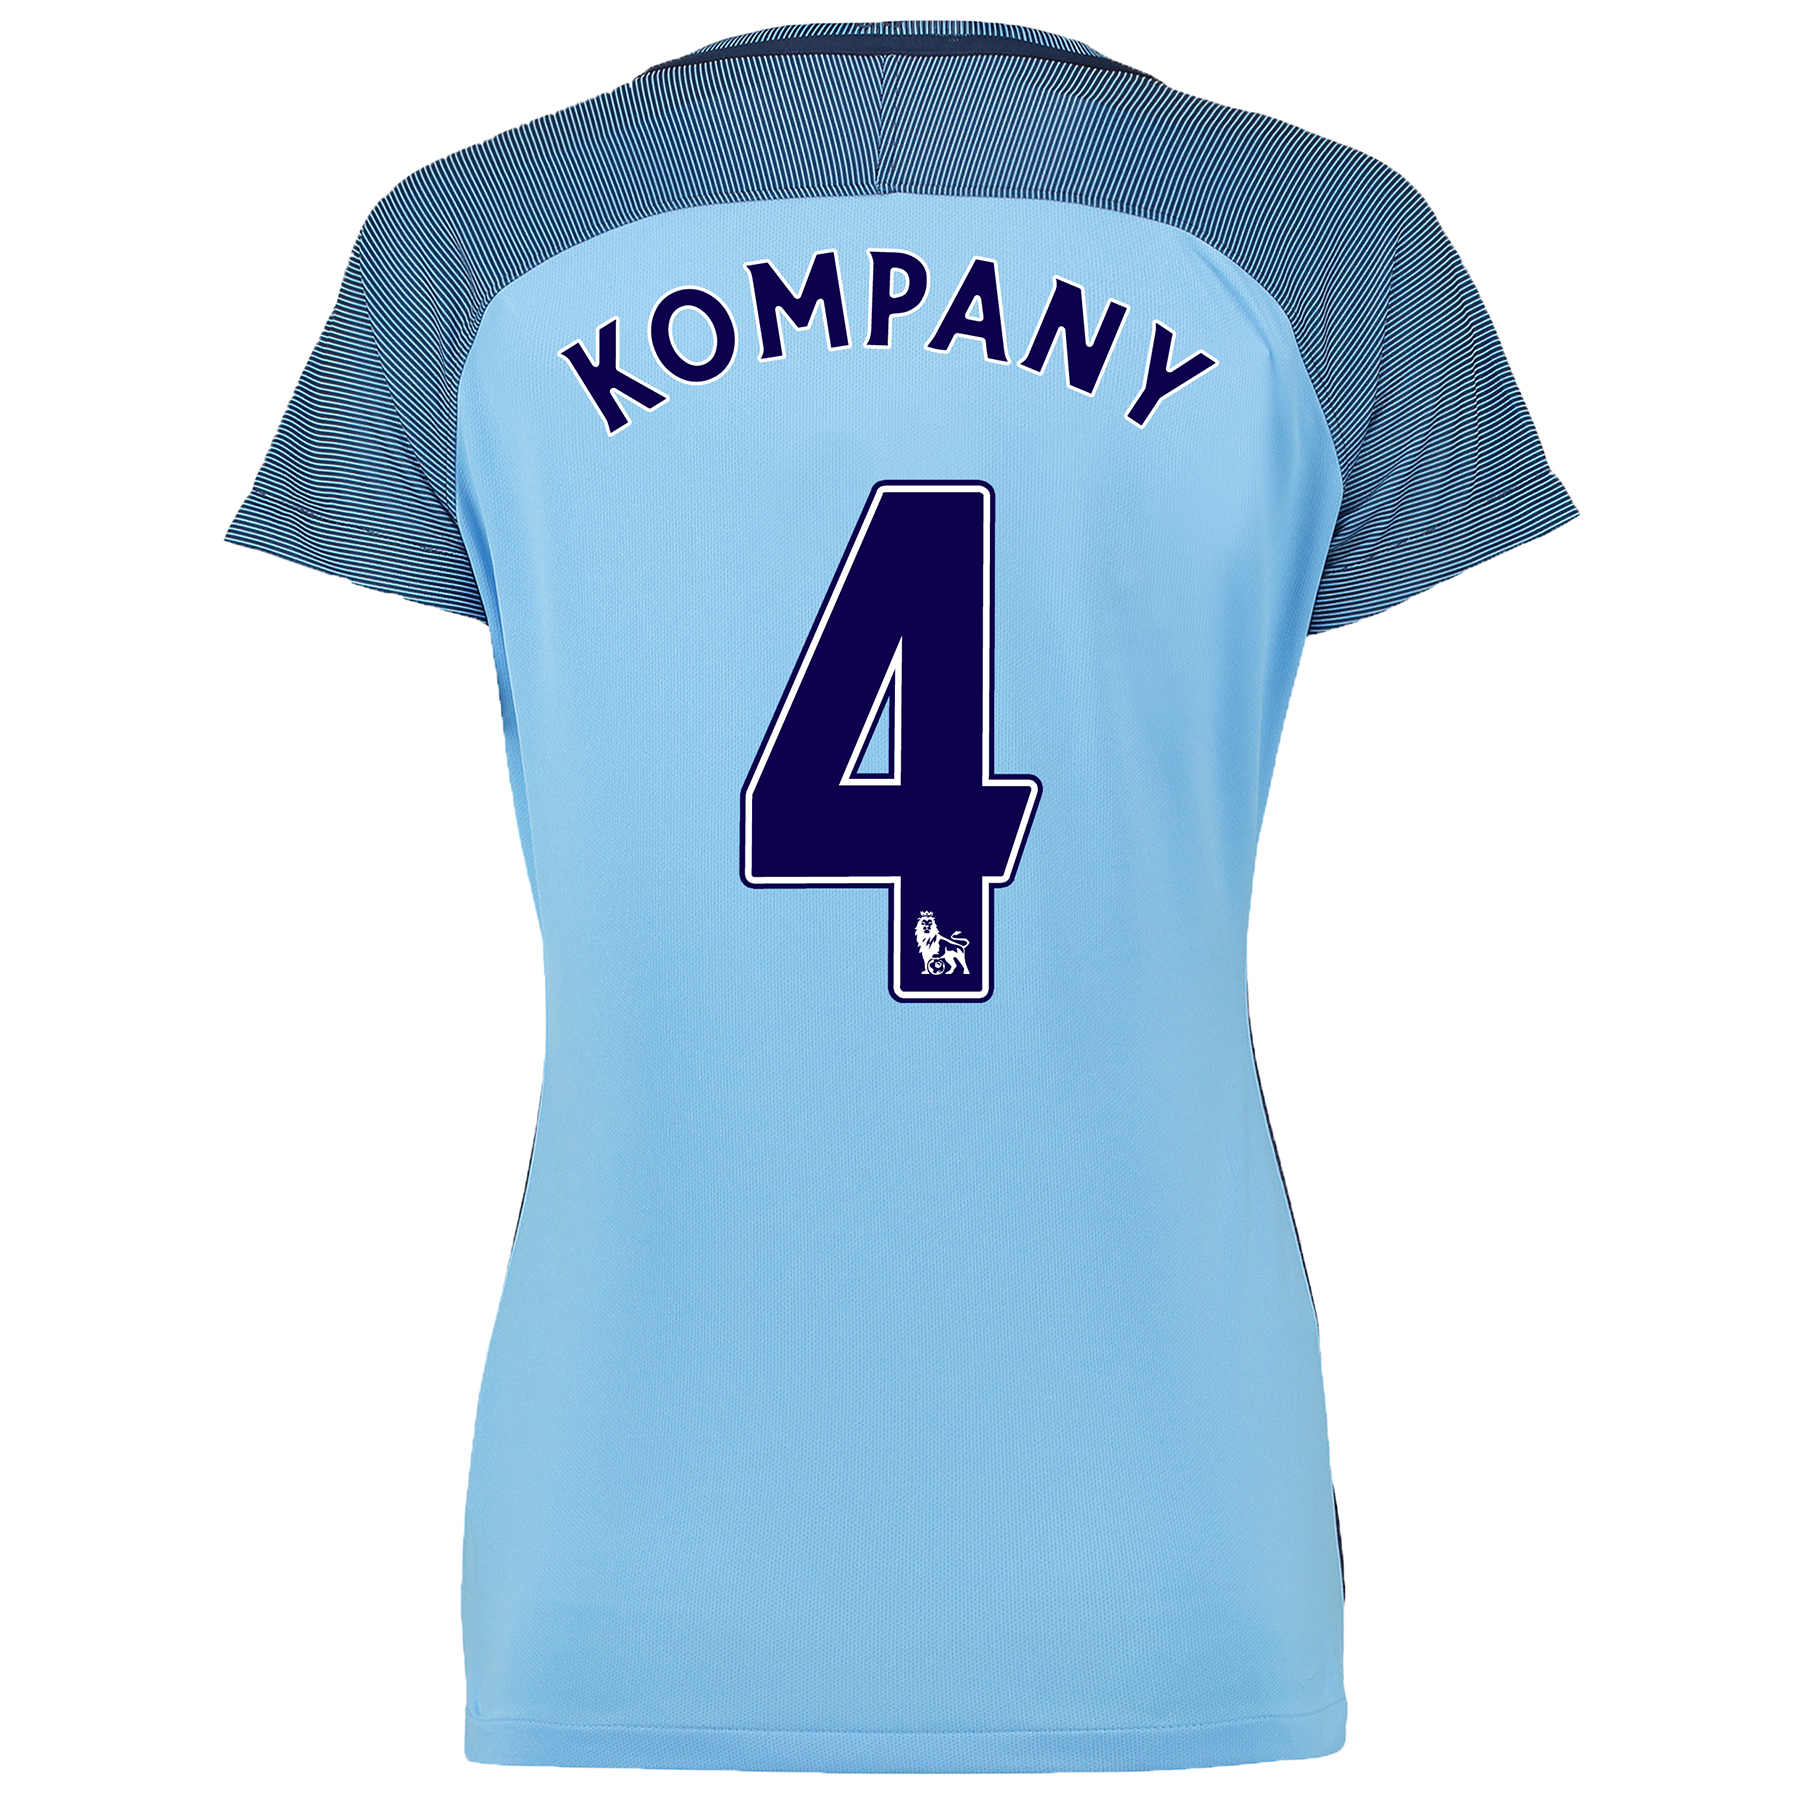 Manchester City Home Shirt 2016-17 - Womens with Kompany 4 printing